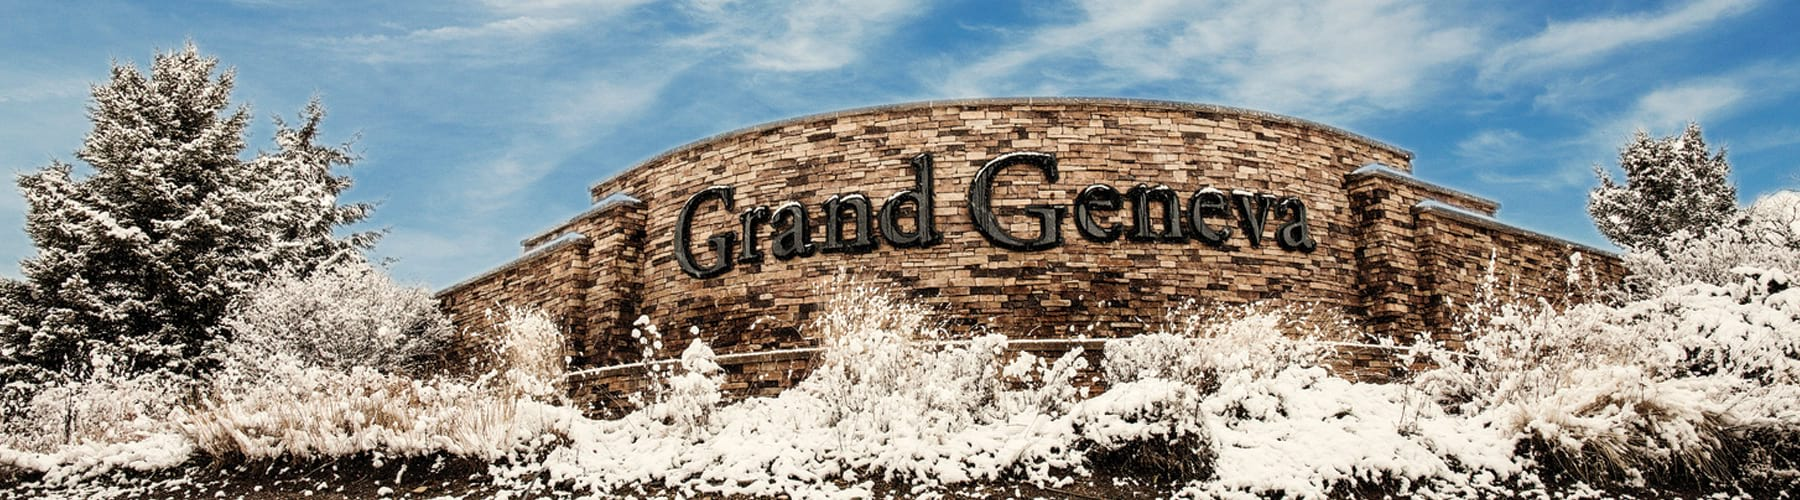 Grand Geneva Entrance in Winter